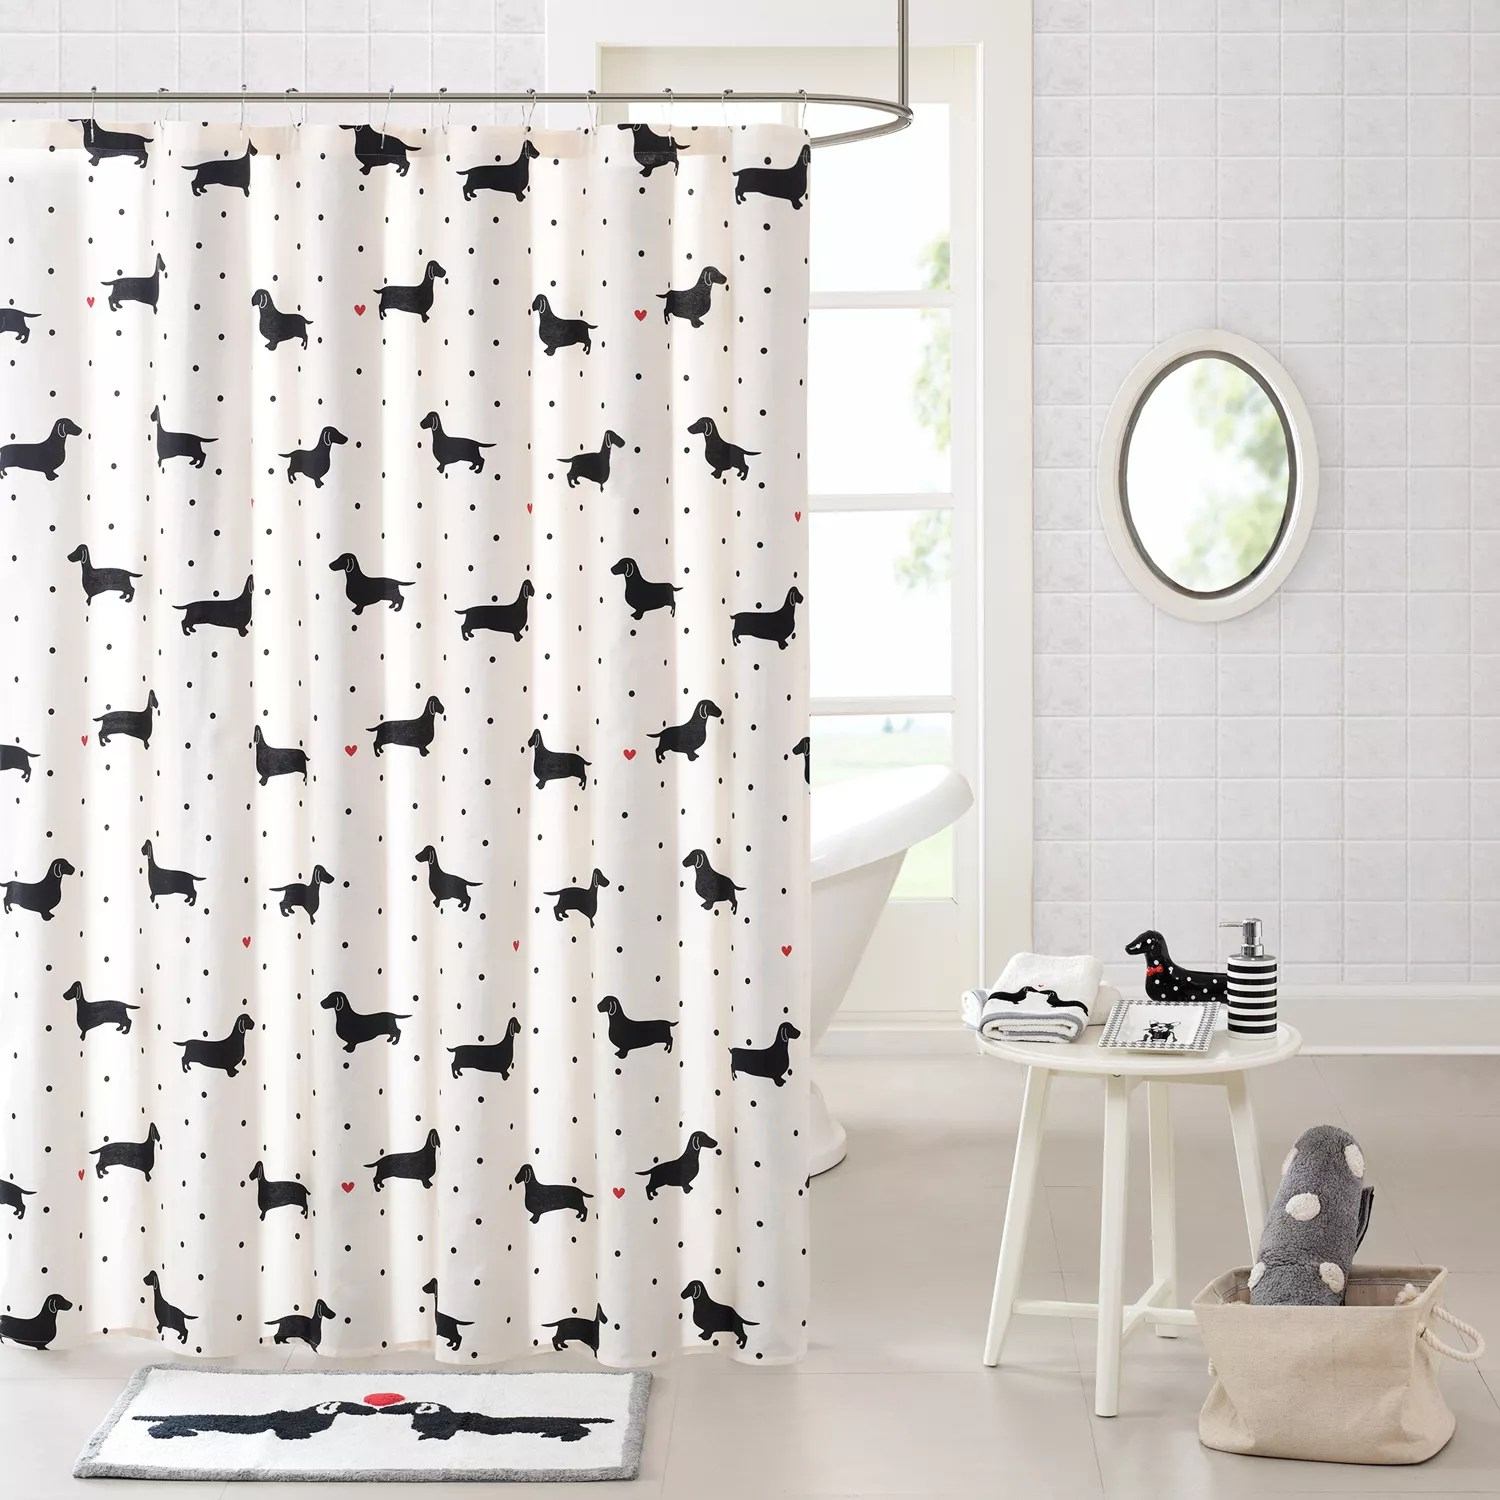 Kohls Com Shower Curtains Hipstyle Hannah Dachshund Shower Curtain Collection